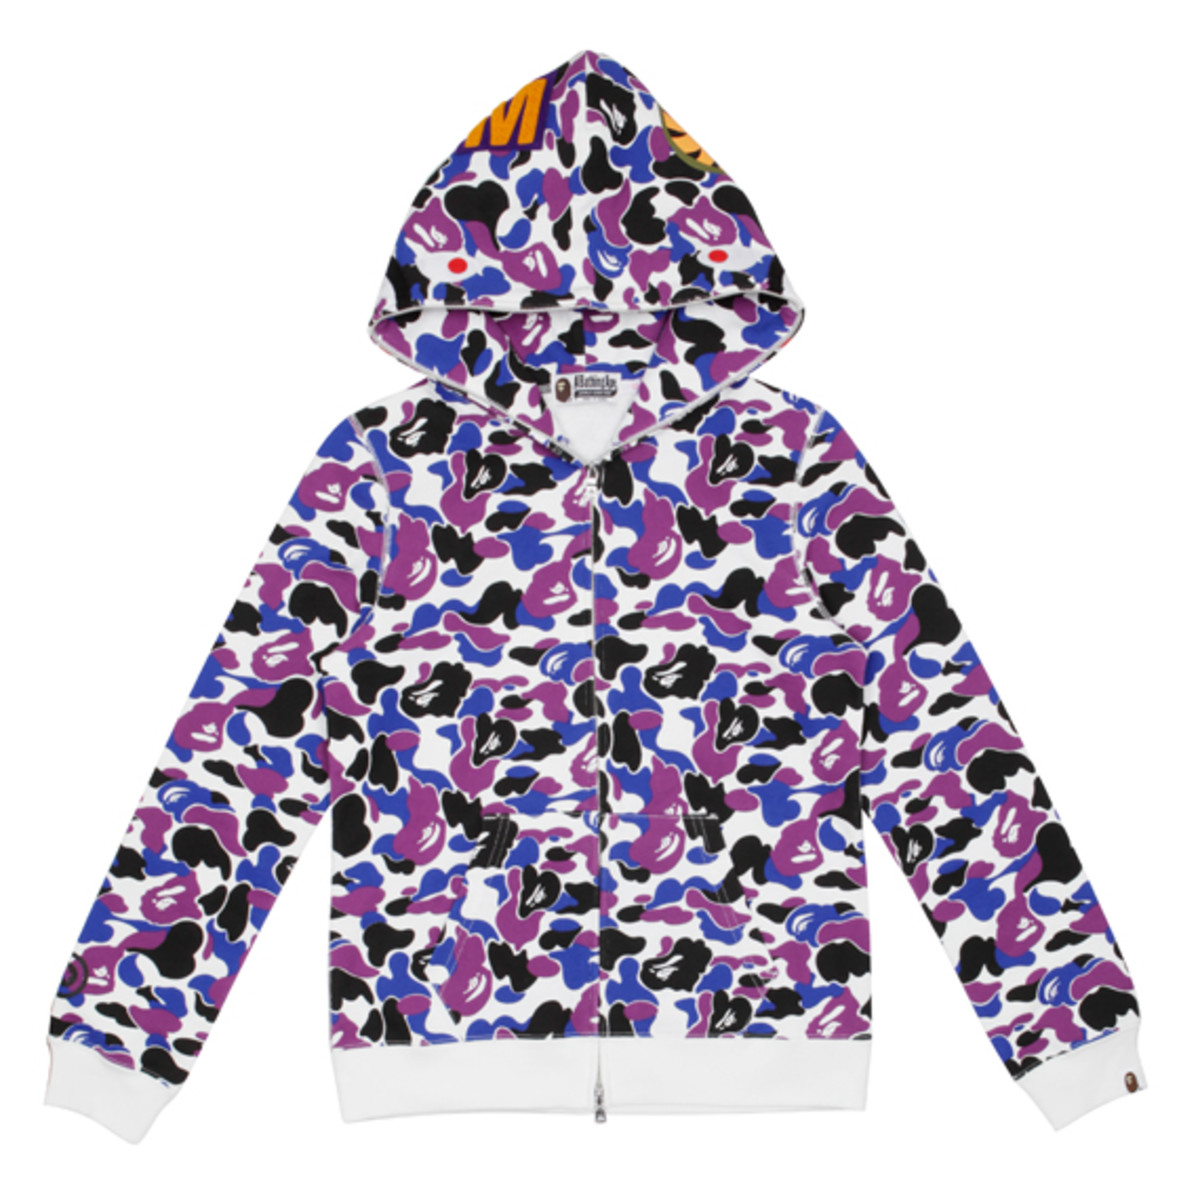 BAPE Store Hong Kong - Opening Hoodies and T-Shirts - Freshness Mag d9817f87d